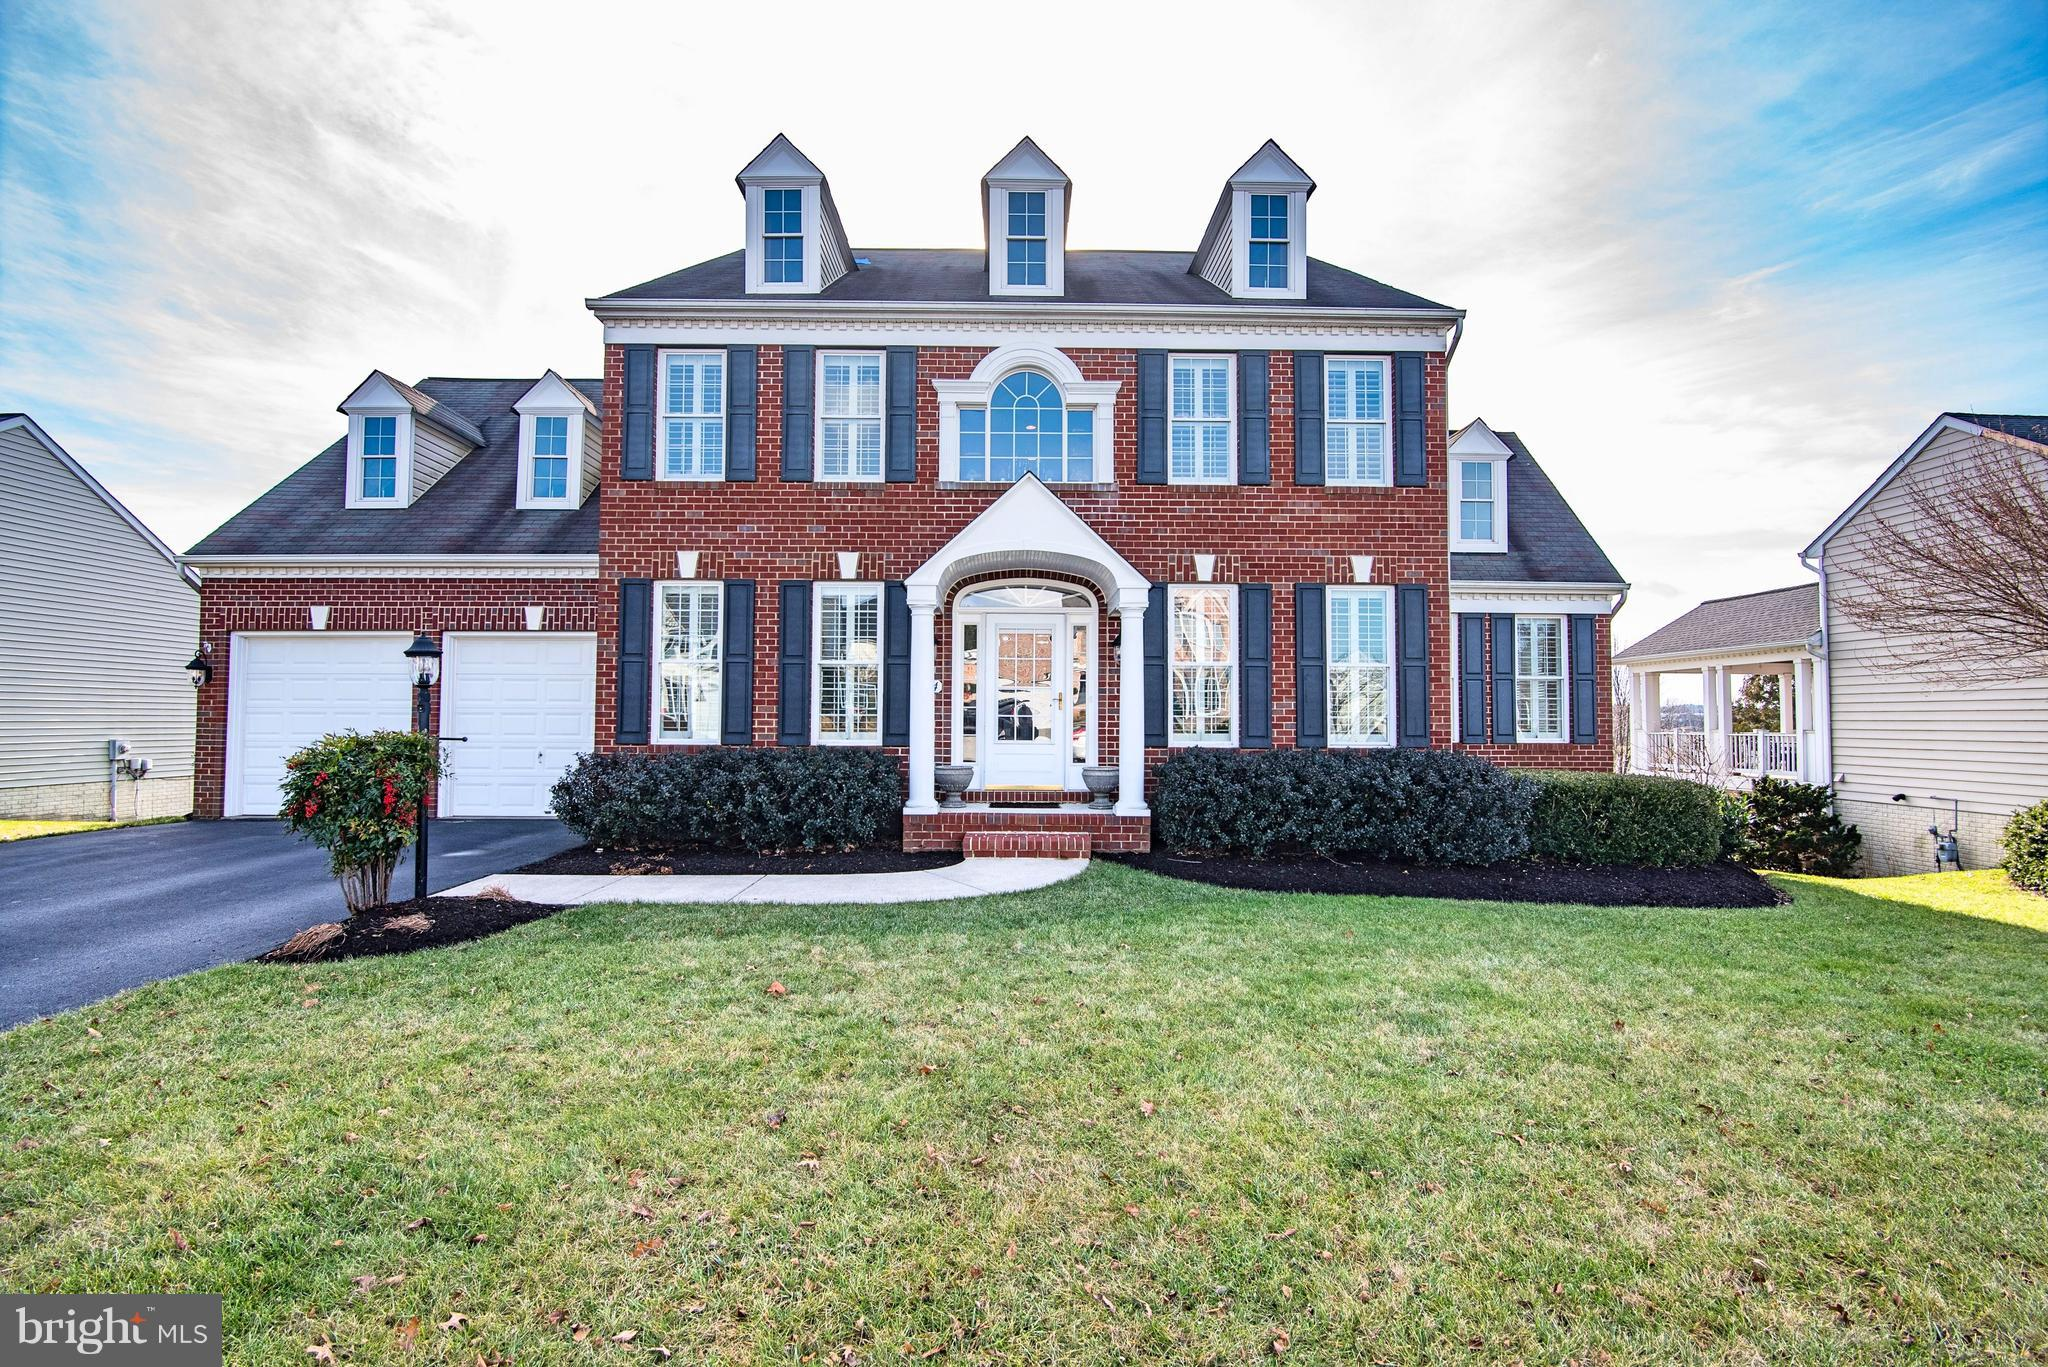 1104 CROSSBOW ROAD, MOUNT AIRY, MD 21771